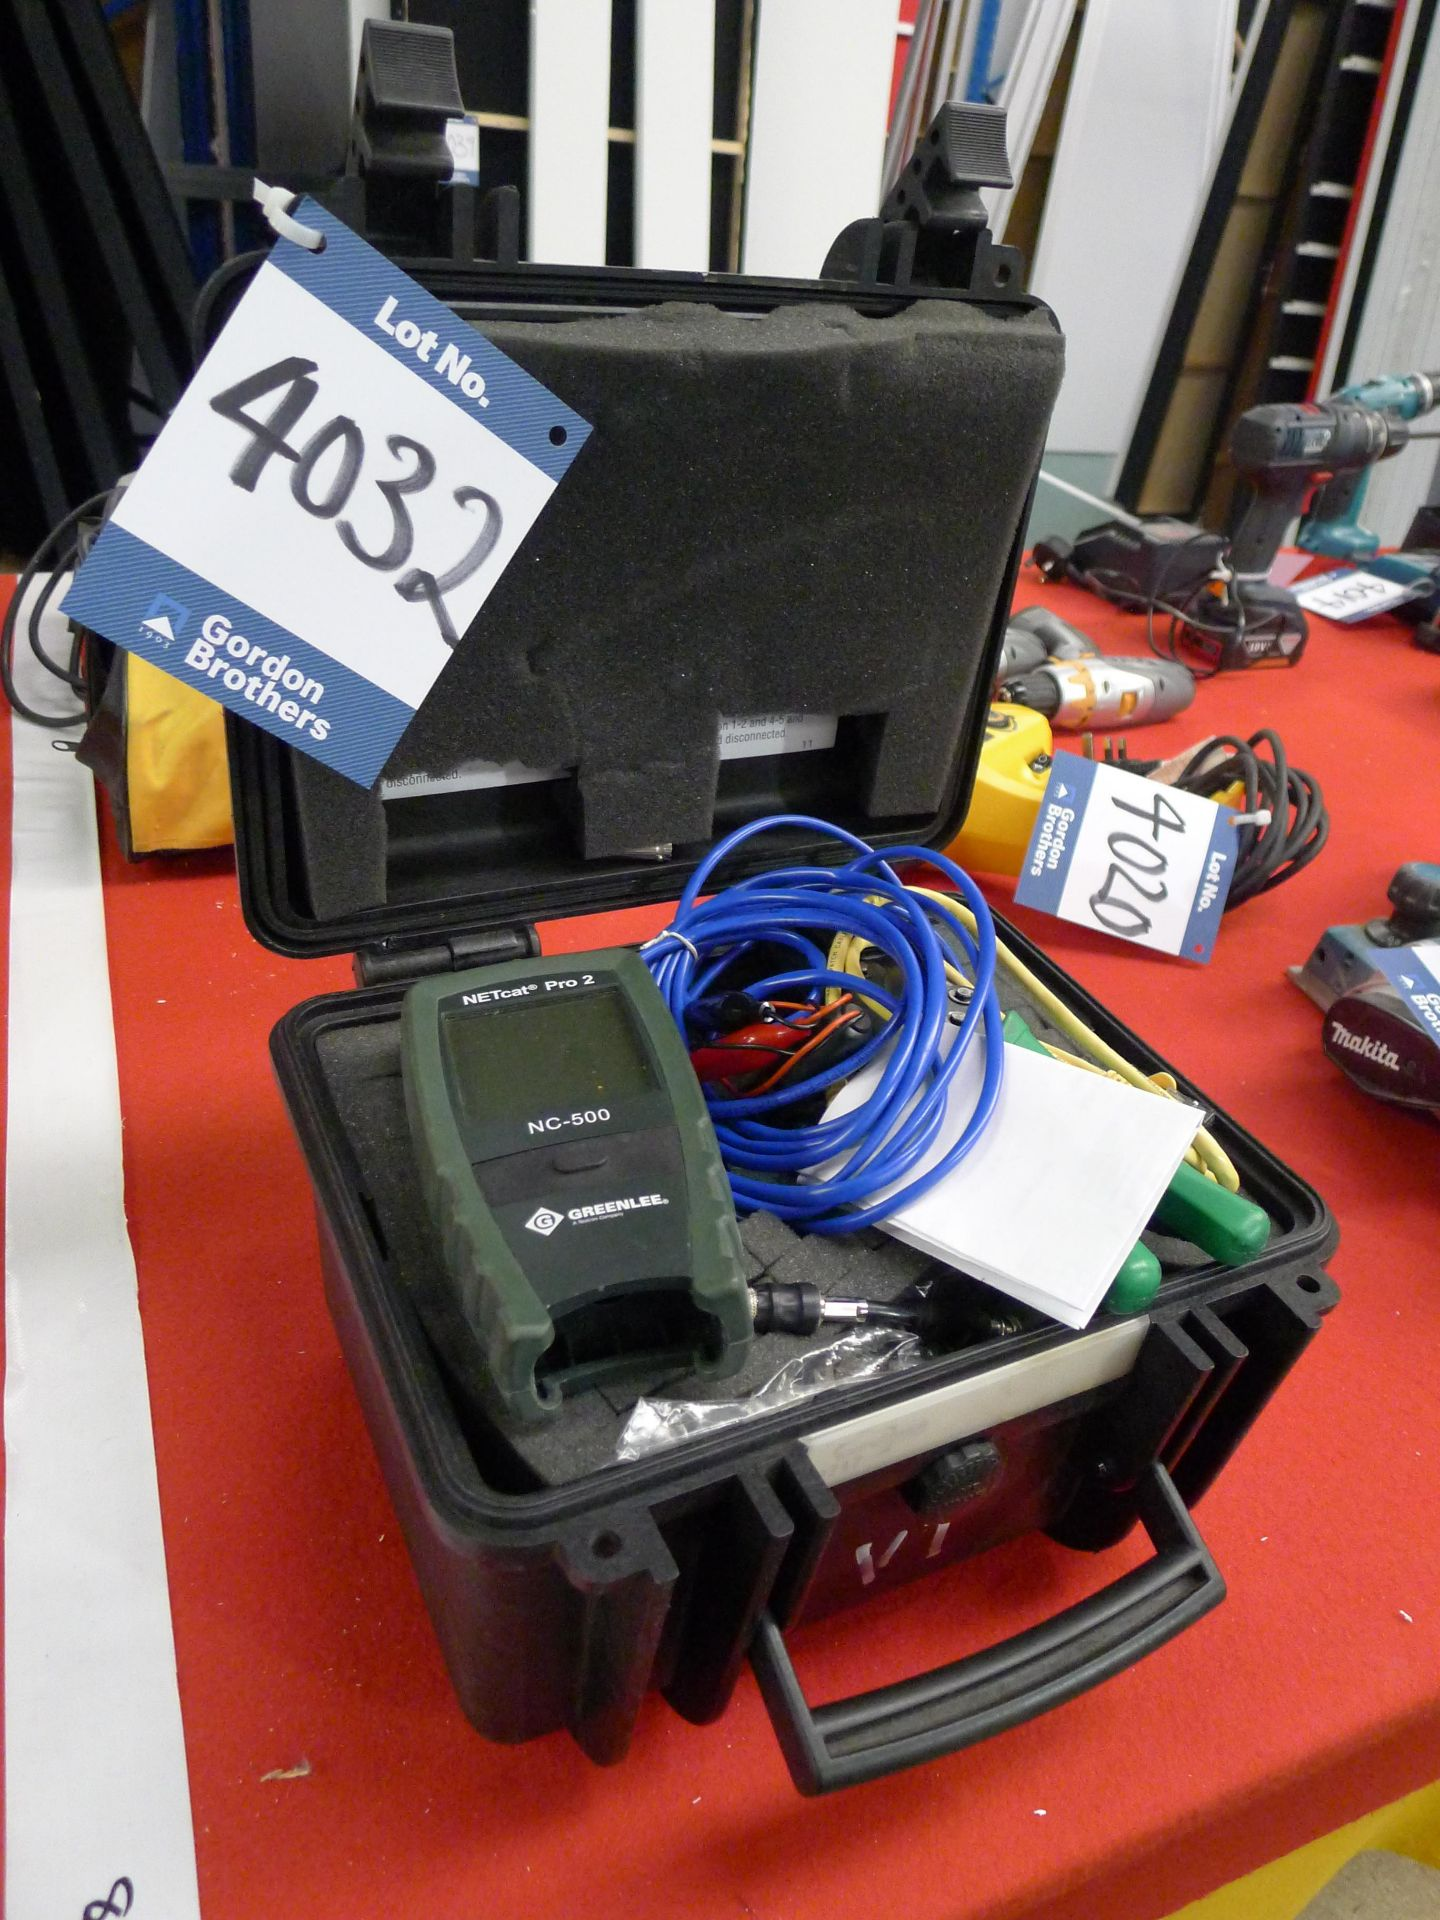 Lot 4032 - Greenlee NC-500 Netcat Pro Cable Tester: Unit 500,